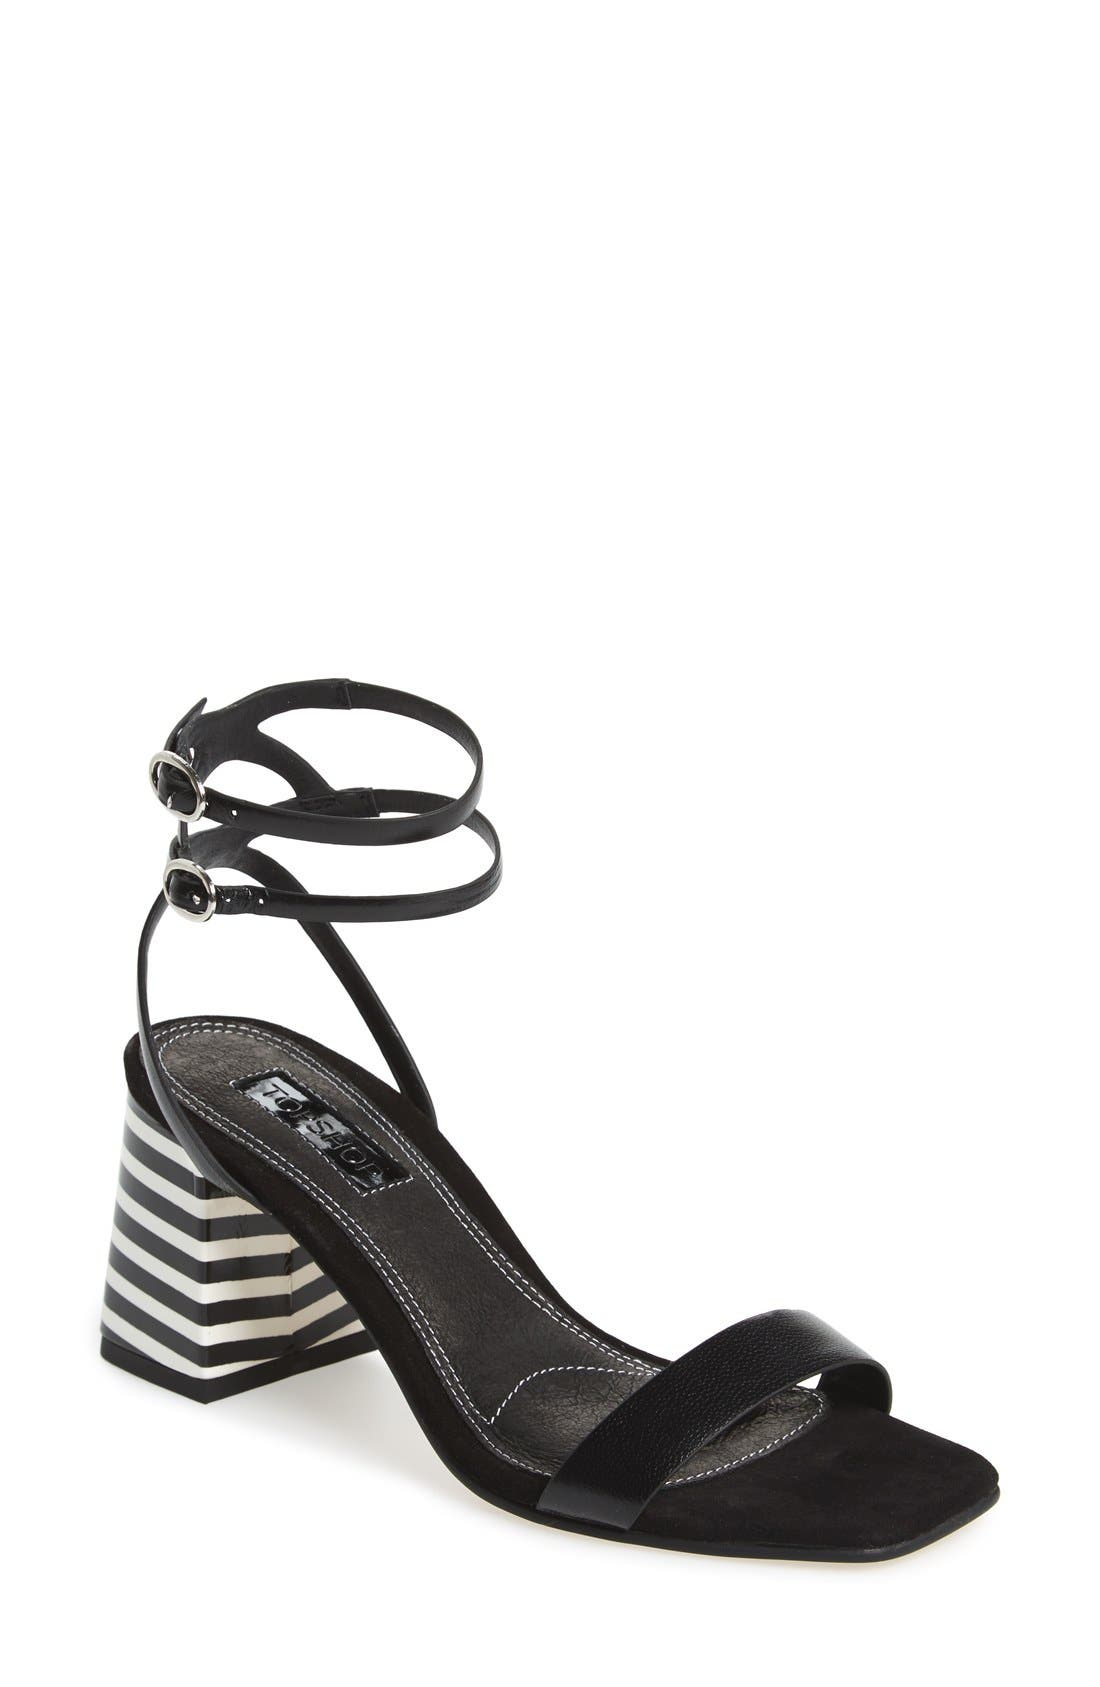 Alternate Image 1 Selected - Topshop 'Nipper' Ankle Wrap Sandal (Women)